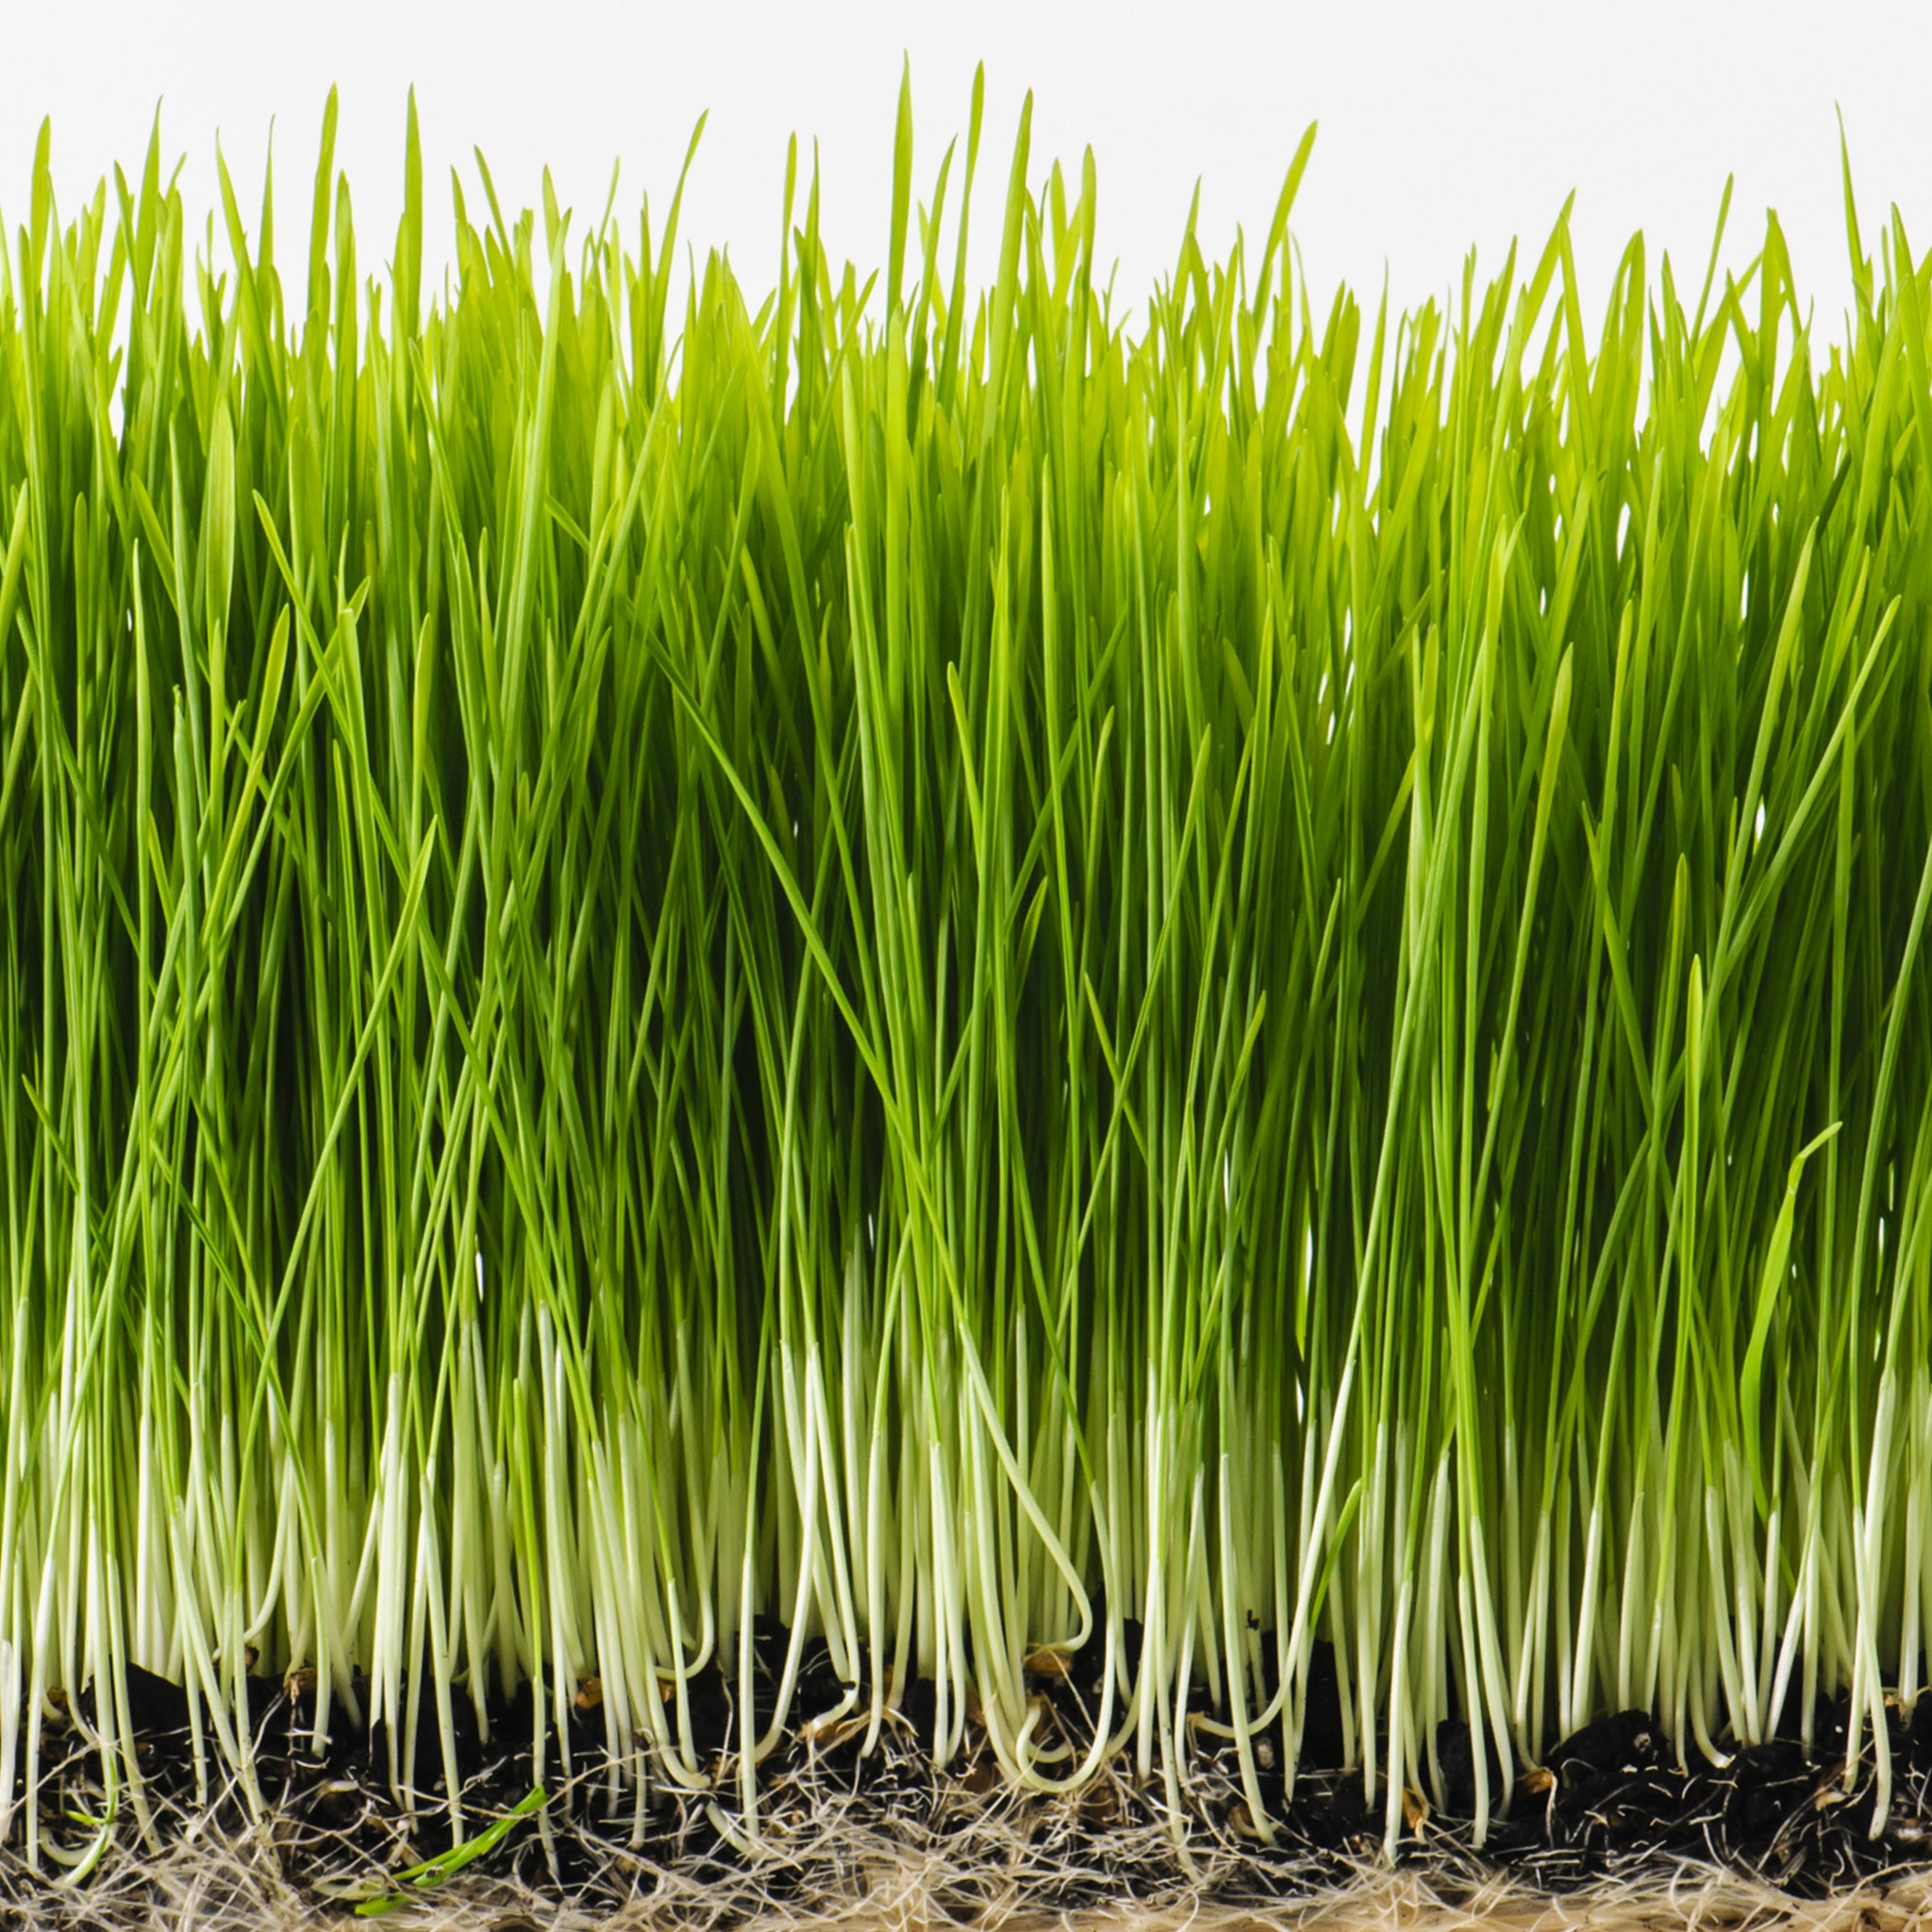 Sproutman's Organic Wheatgrass Sprouting Seeds (2 Lbs) - Tribest